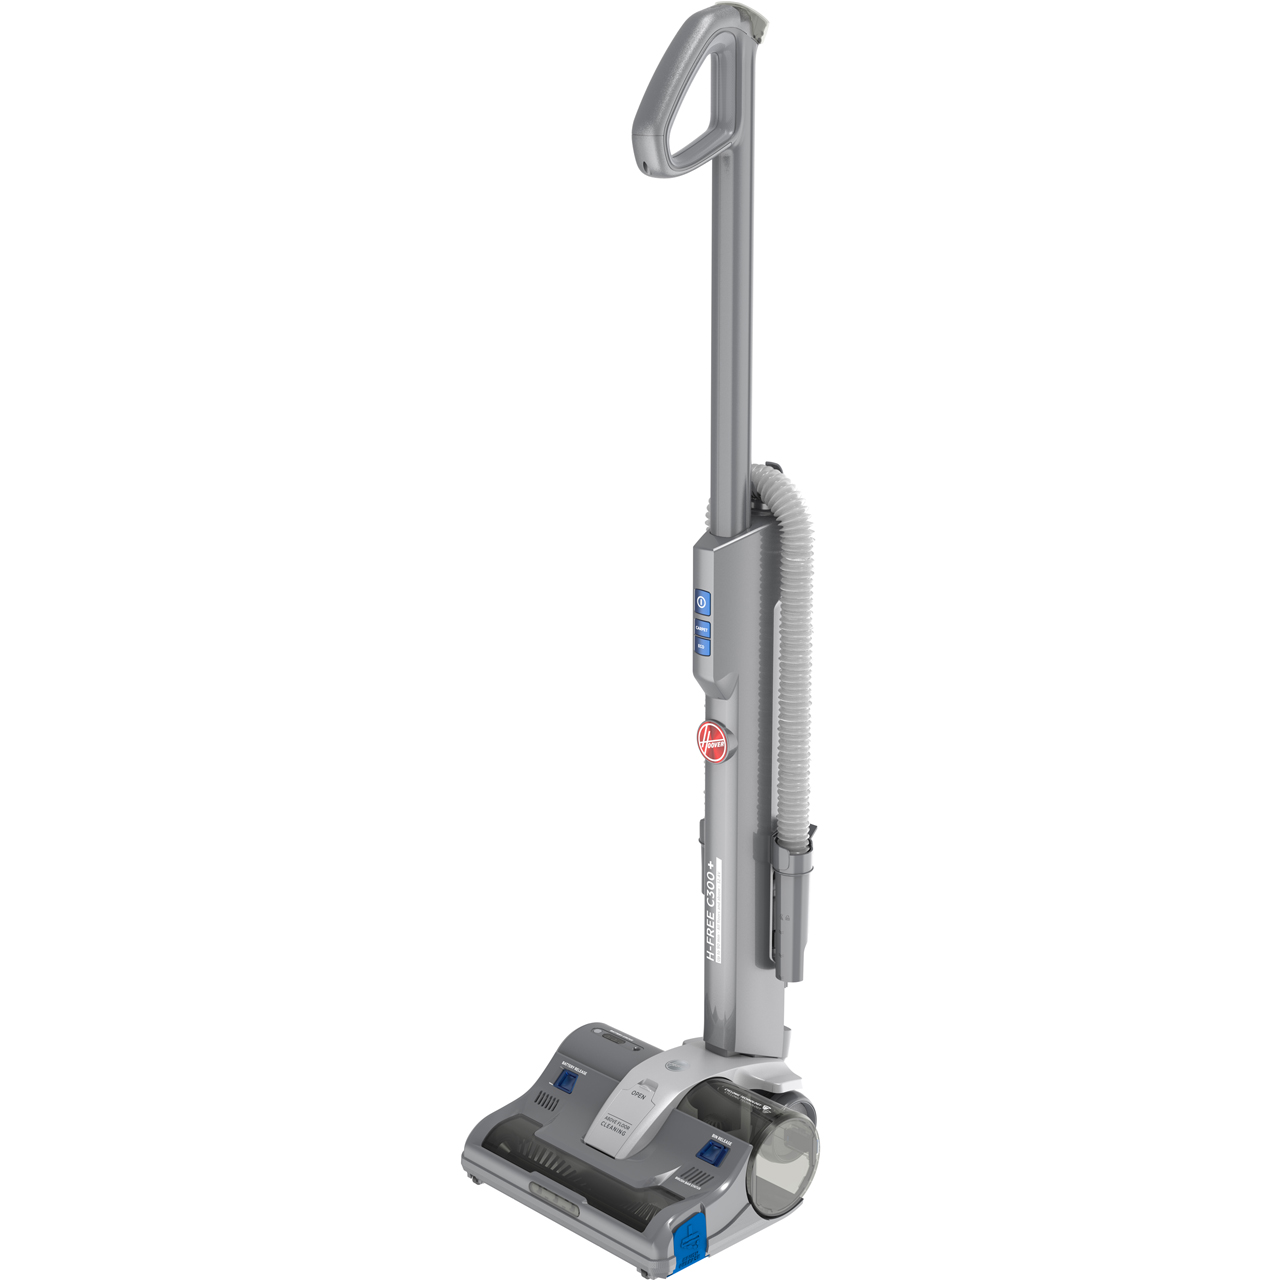 Hoover C300 Cordless Upright Vacuum